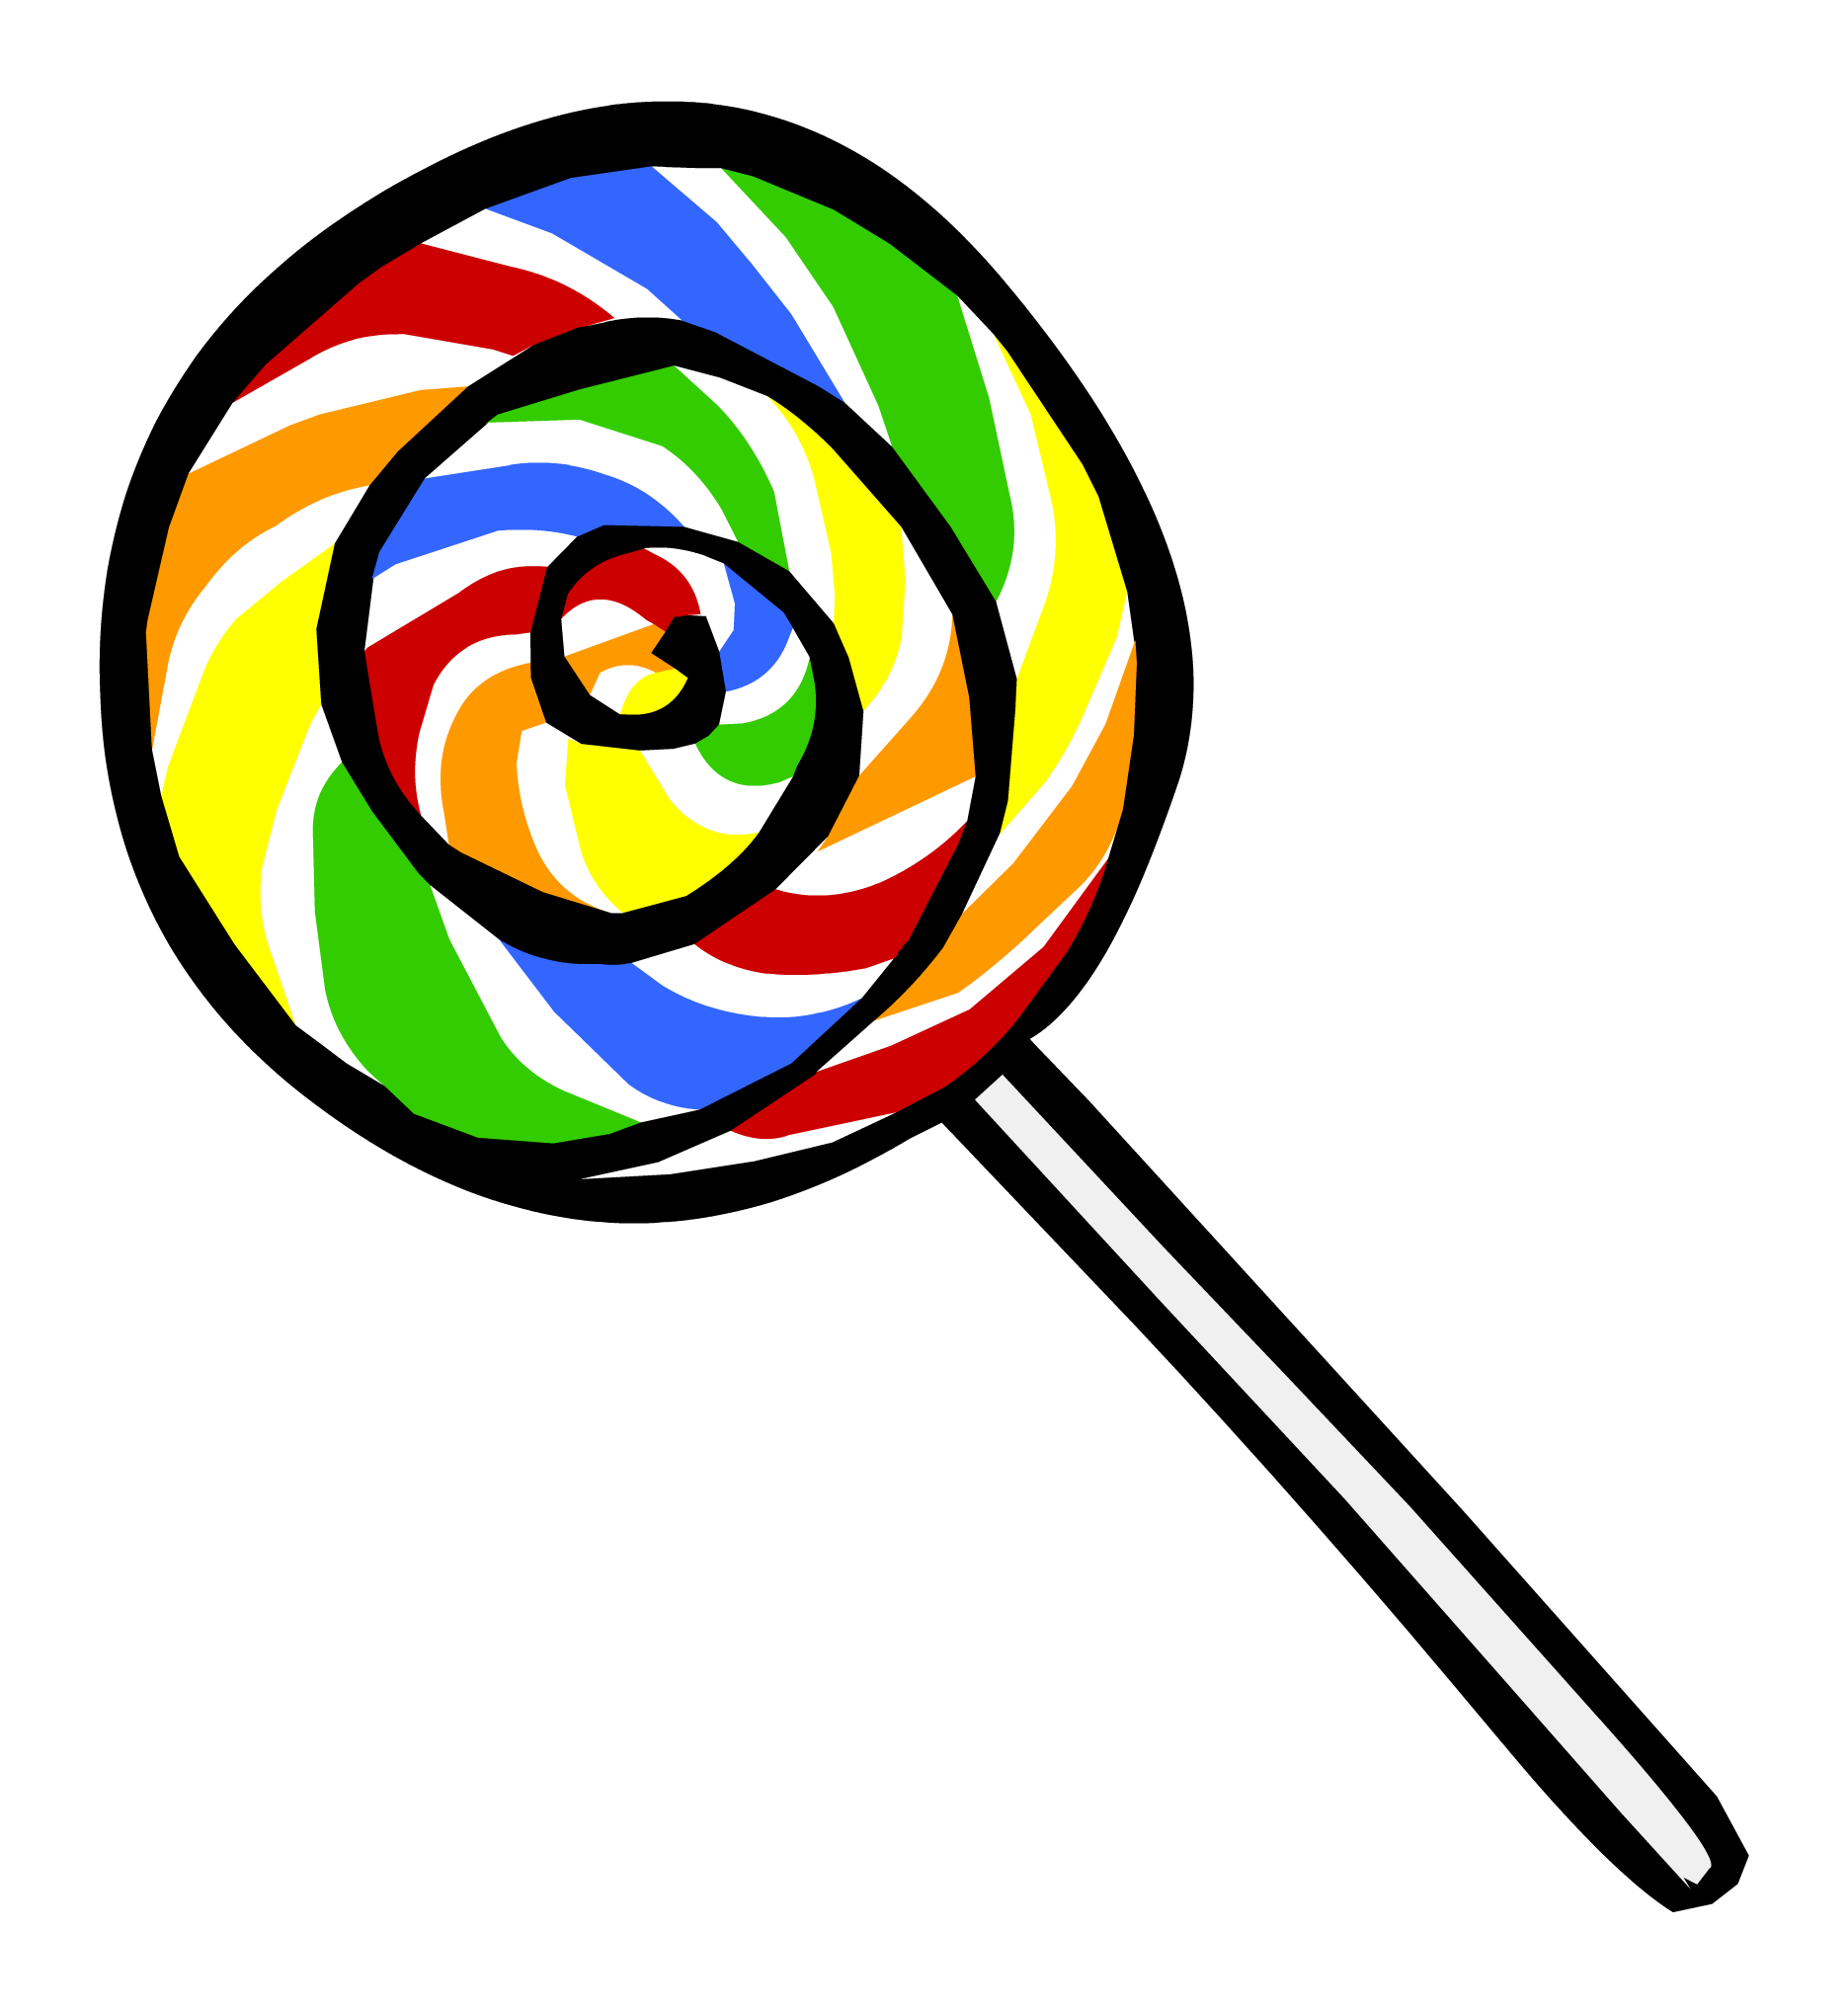 Marbles clipart three. Lollipop free download clip